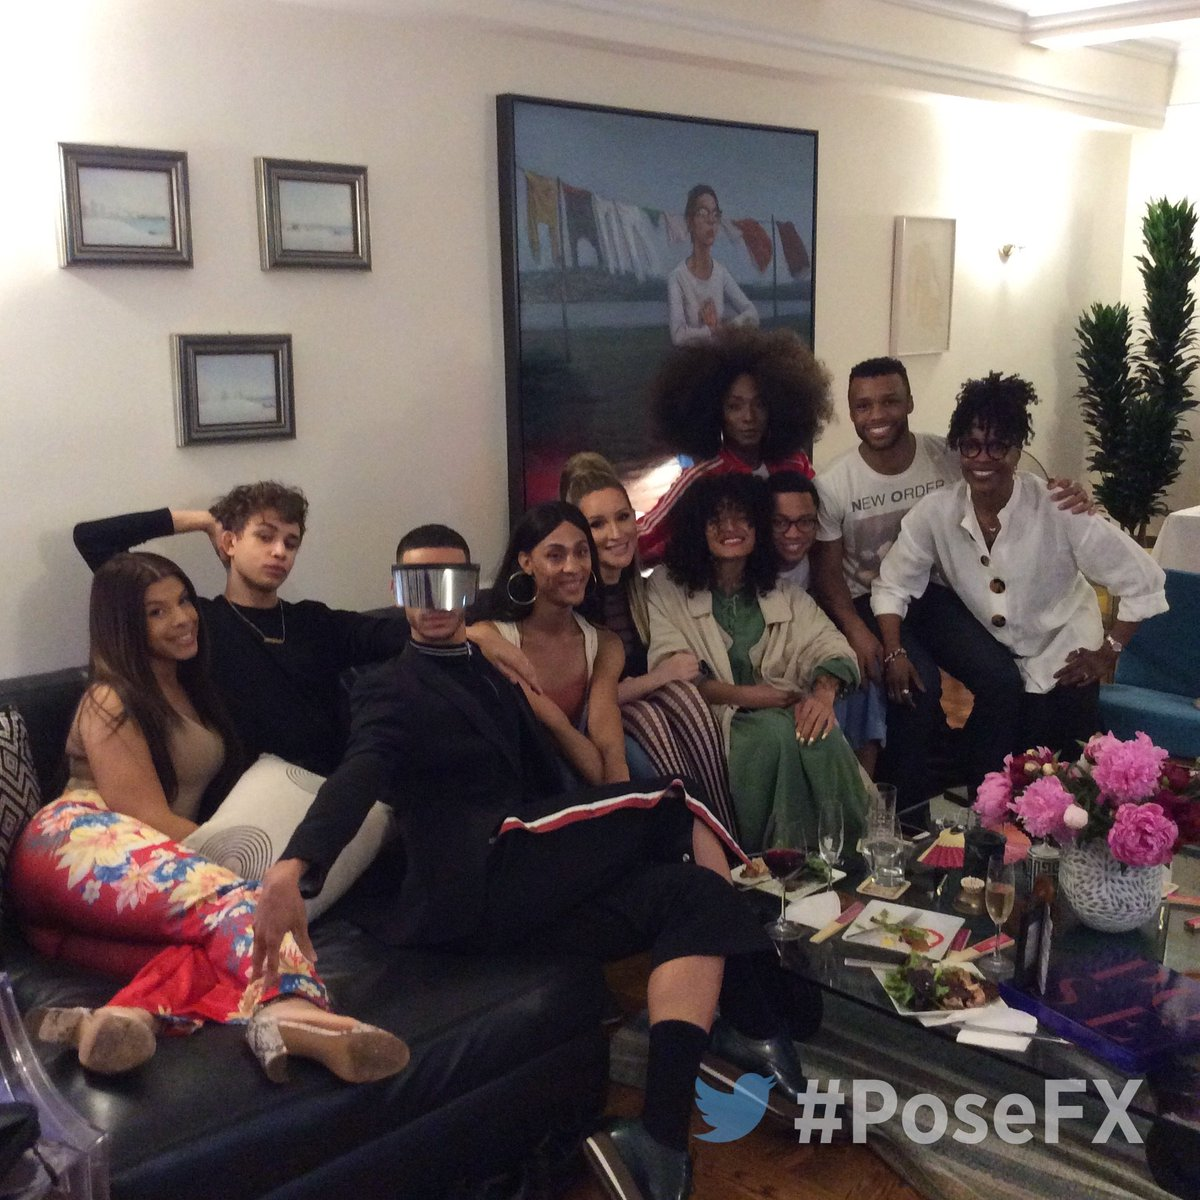 We're ready for the premiere! Live tweet with us! #PoseFX